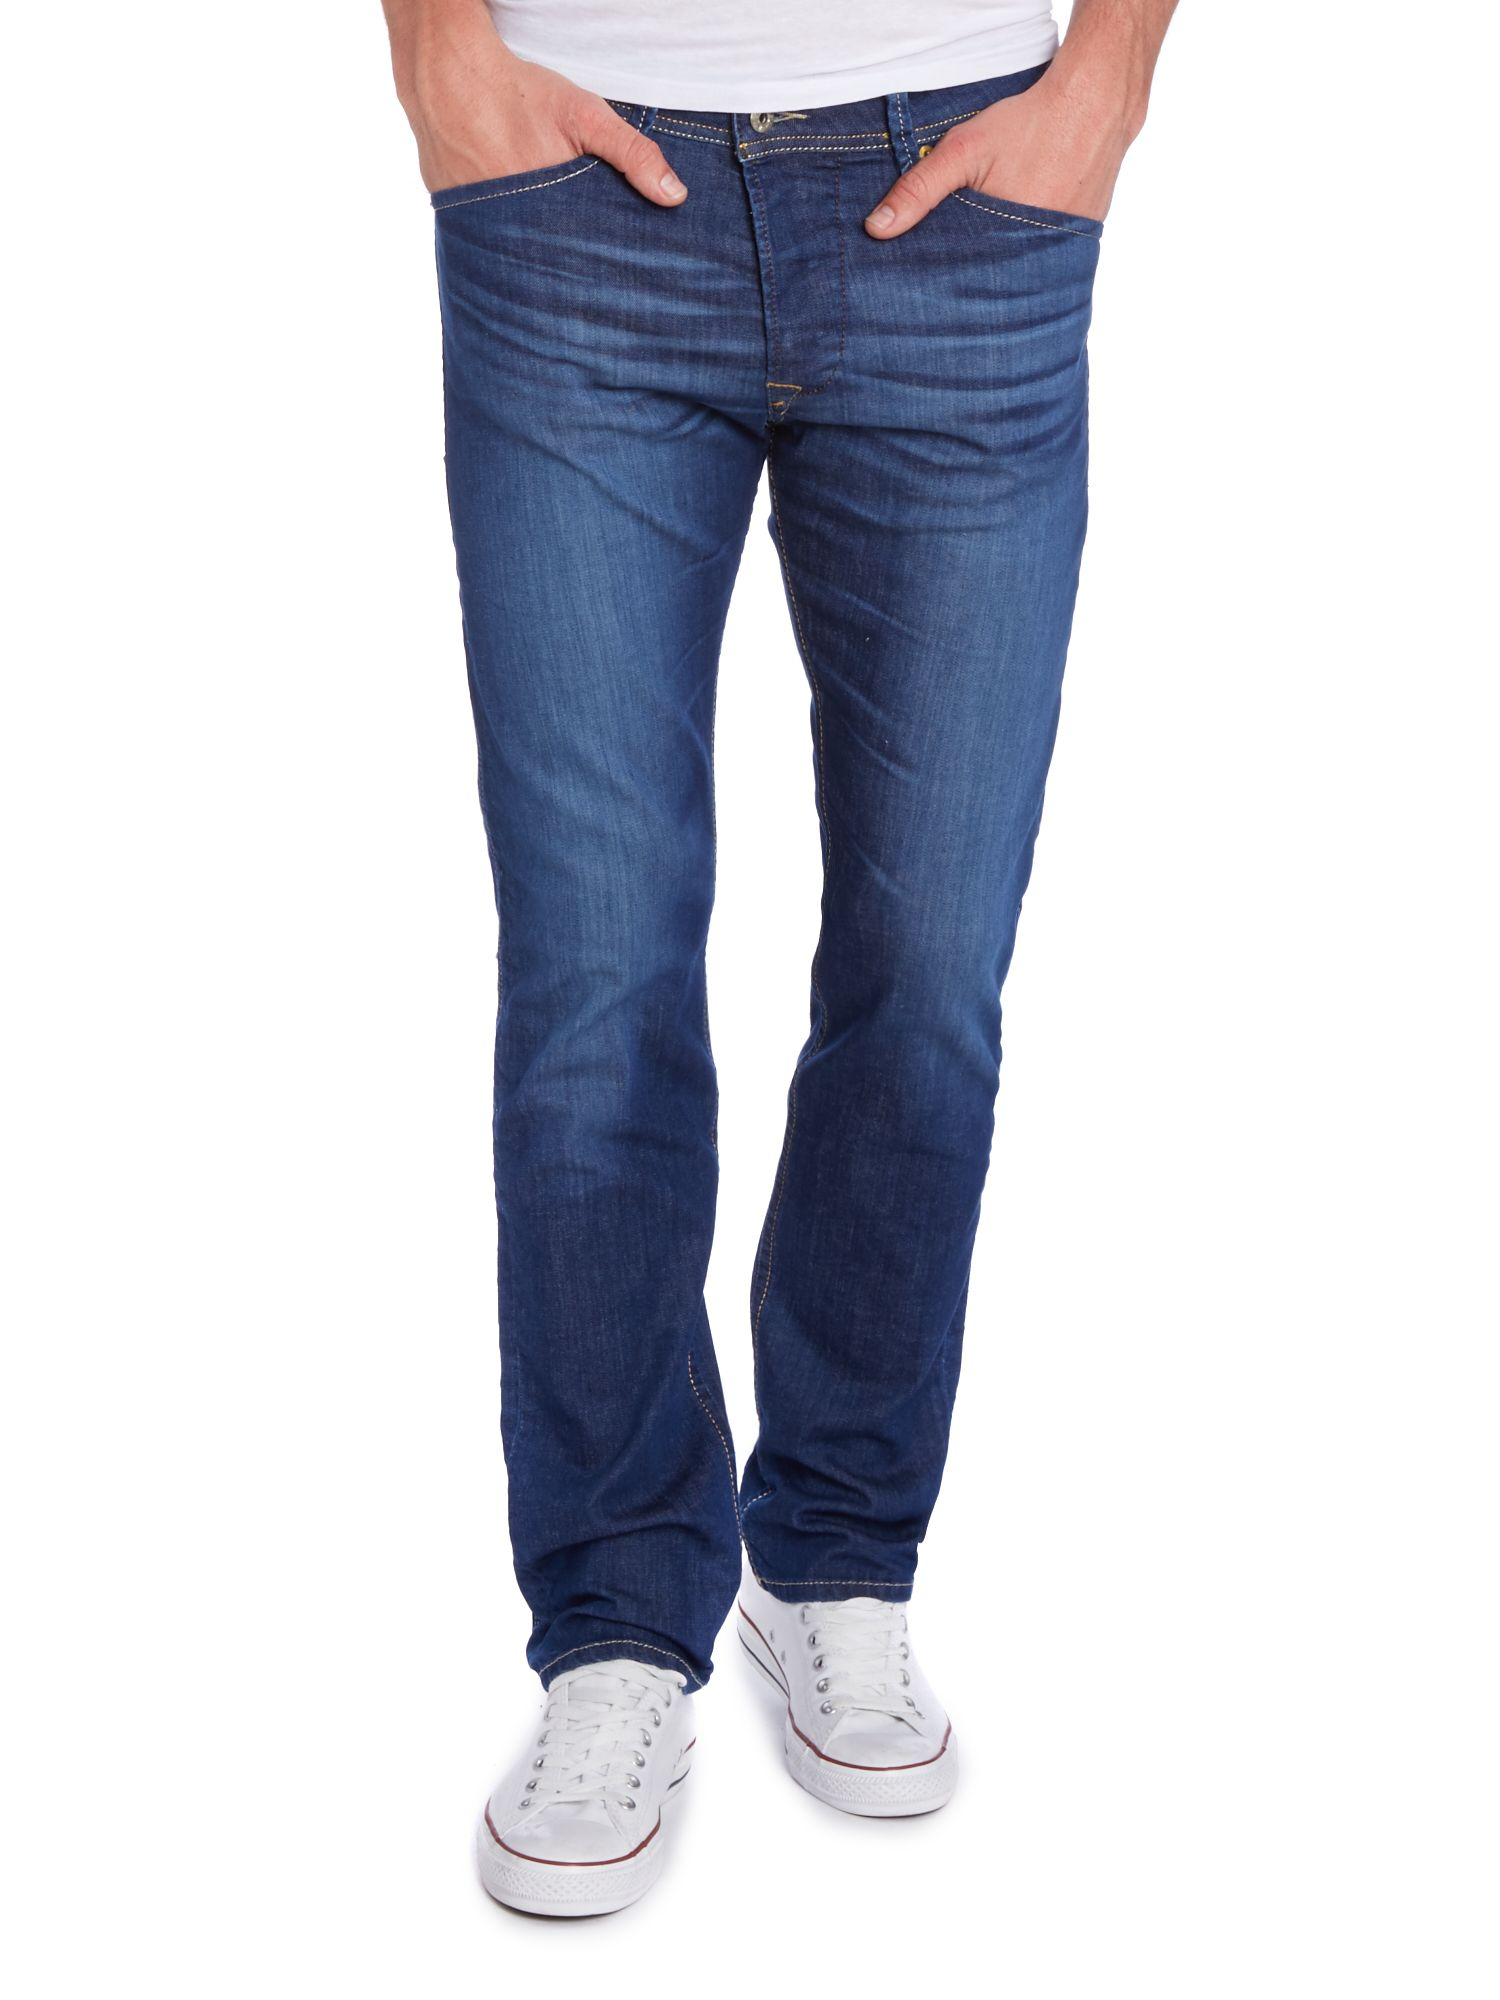 Darron 607I rinse regular slim fit jeans